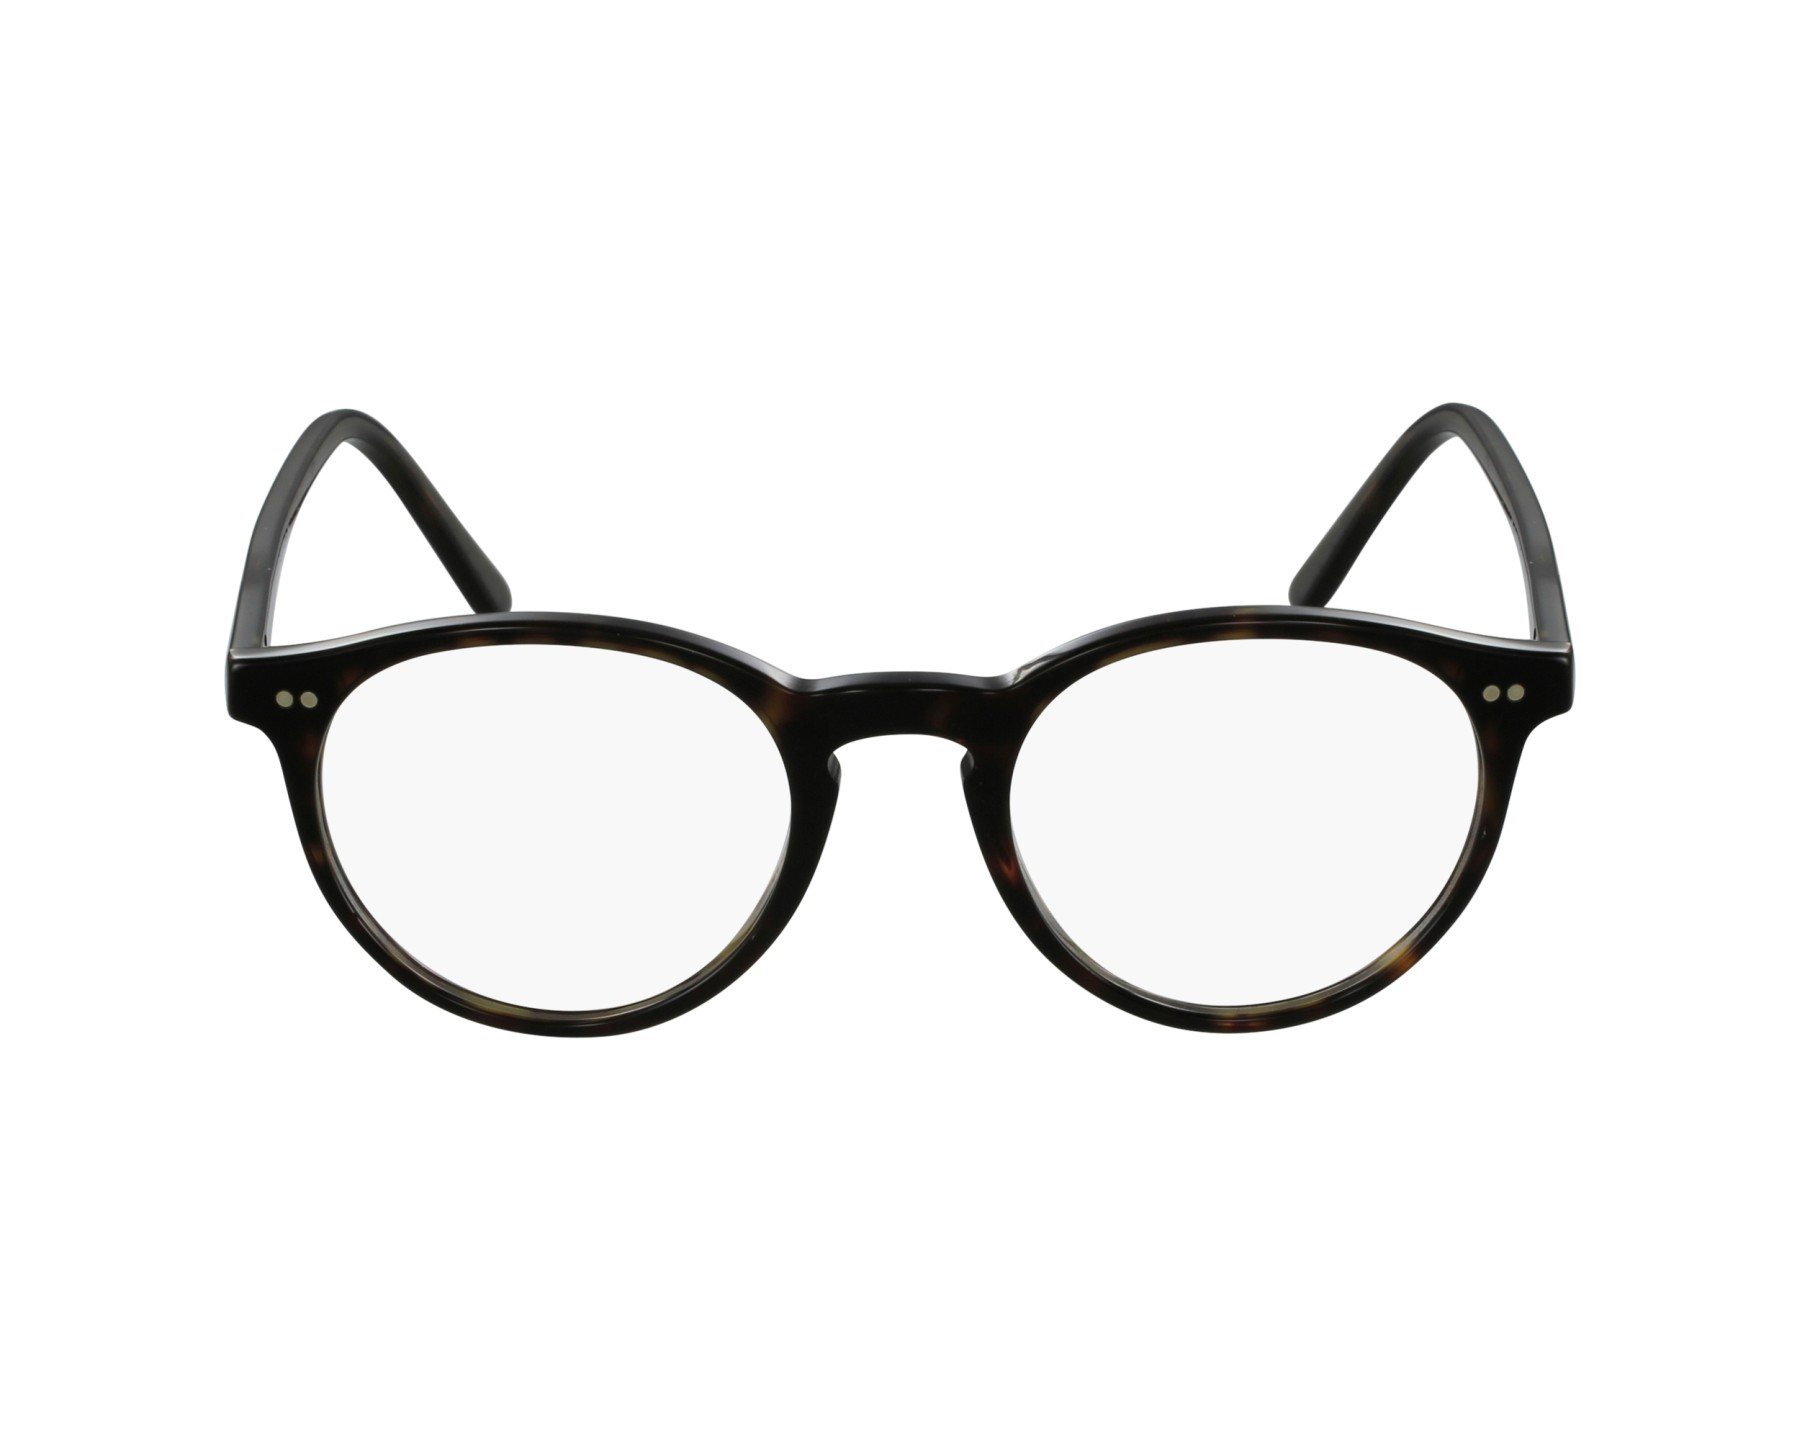 eyeglasses Polo Ralph Lauren PH-2083 5003 48-20 Havana profile view